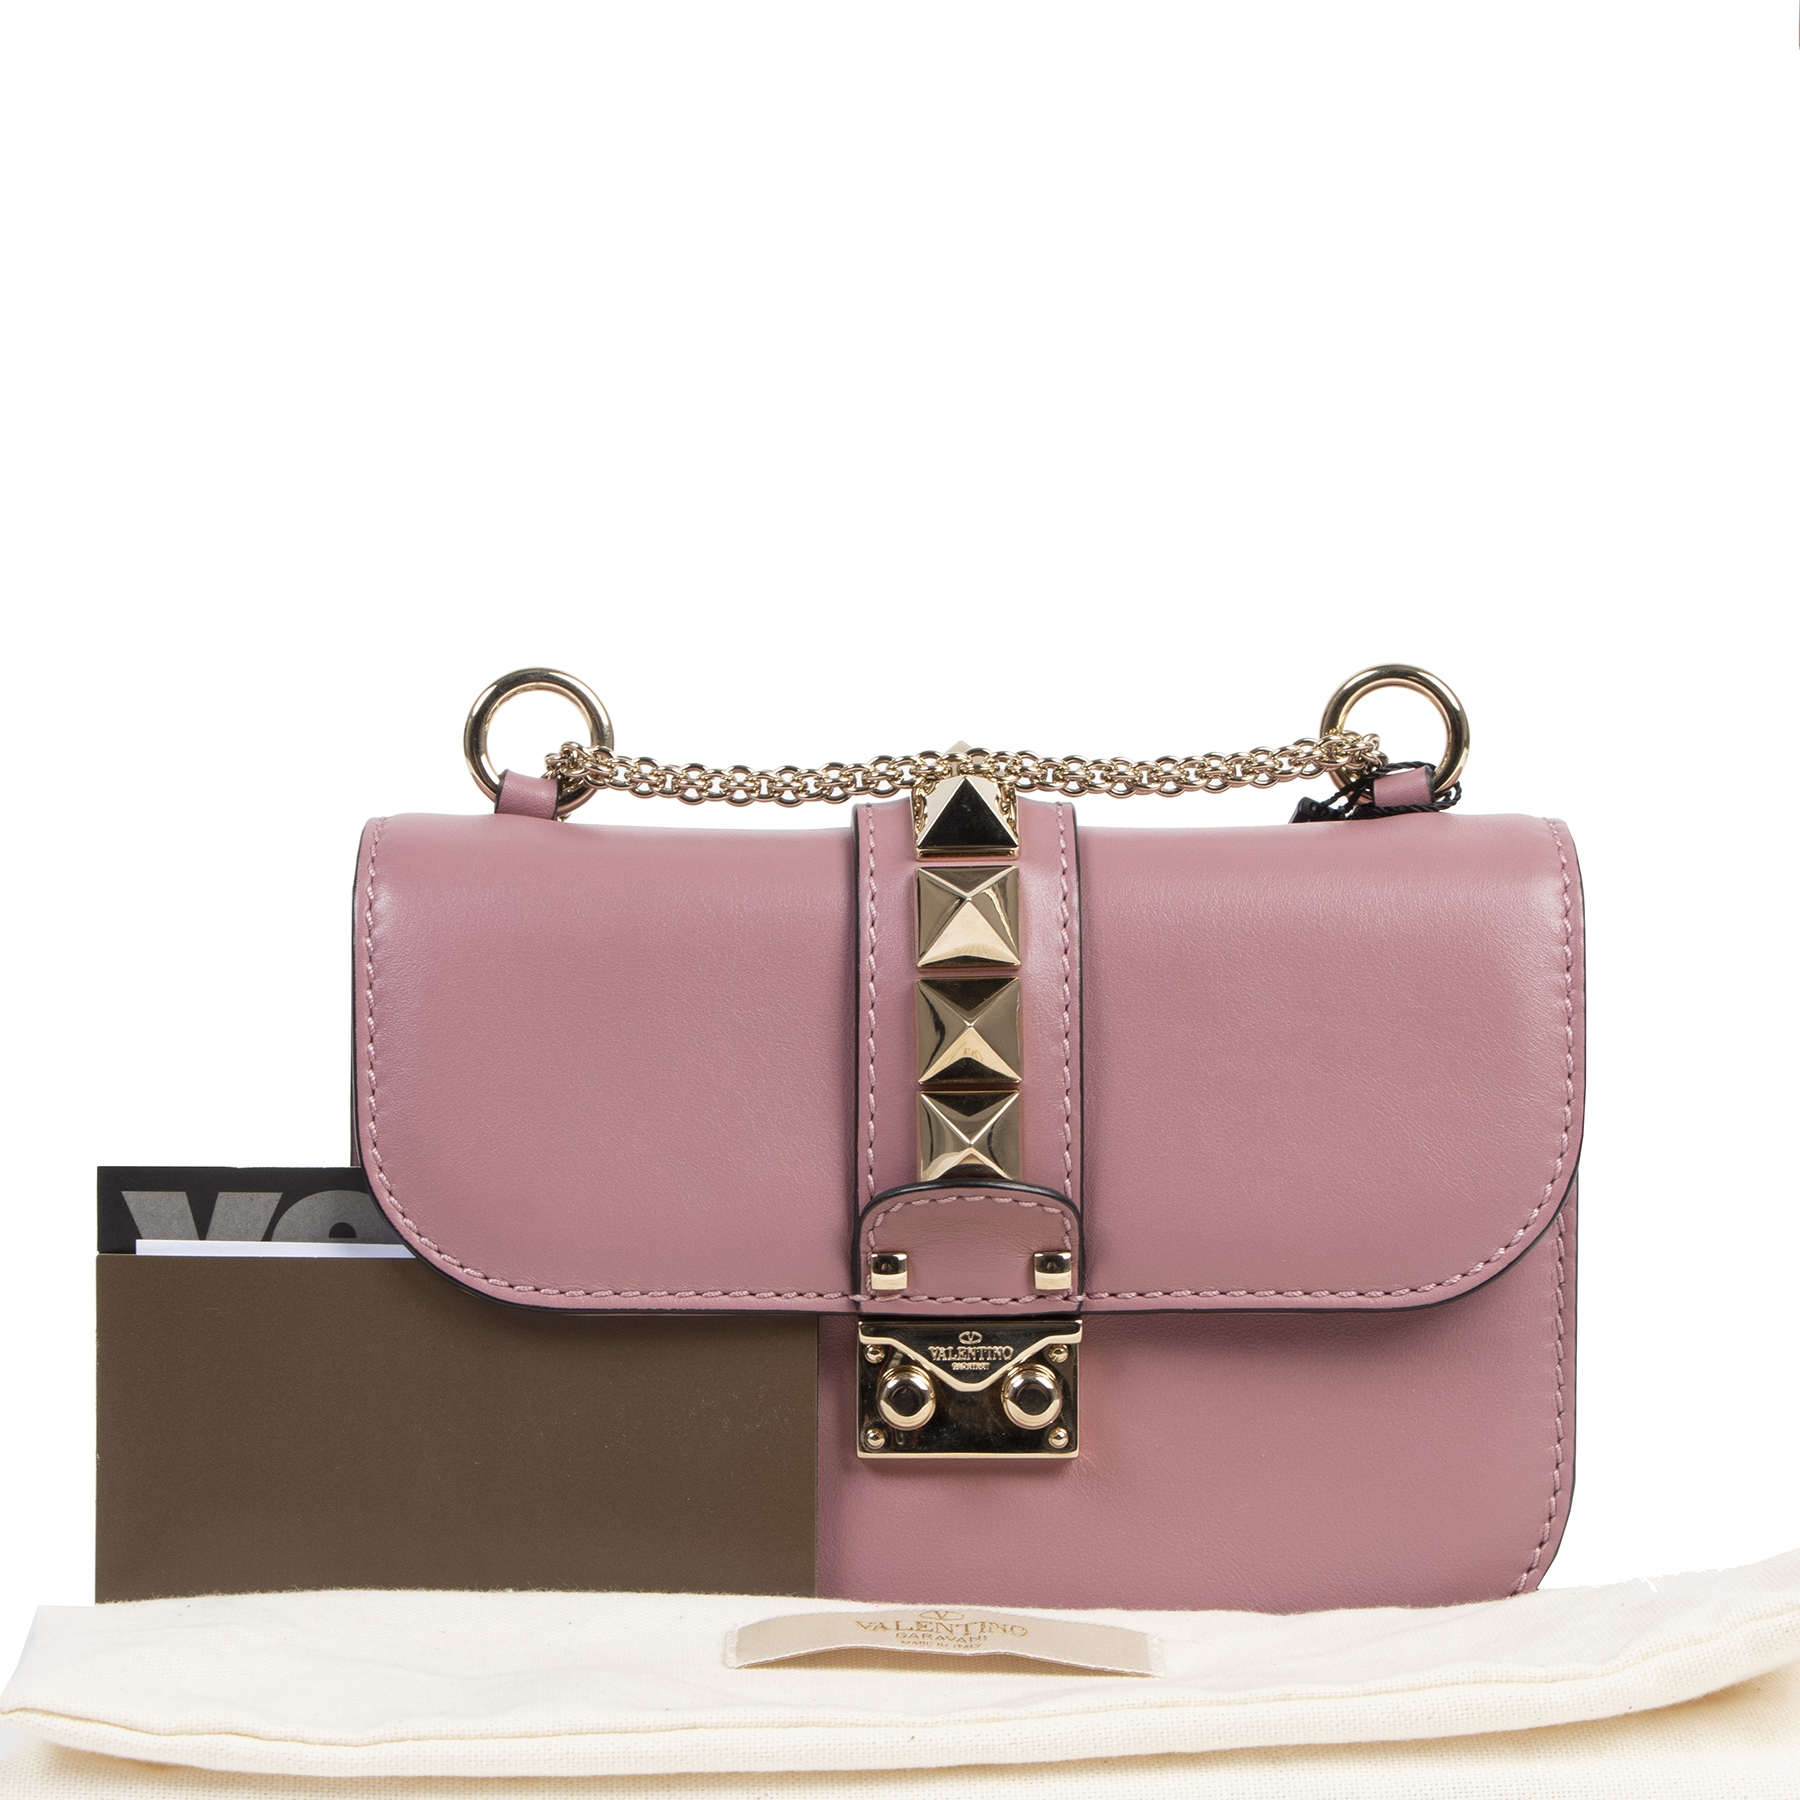 acheter en ligne seconde main Valentino Garavani Mini 'Glam Lock' Pink Purple Shoulder Bag